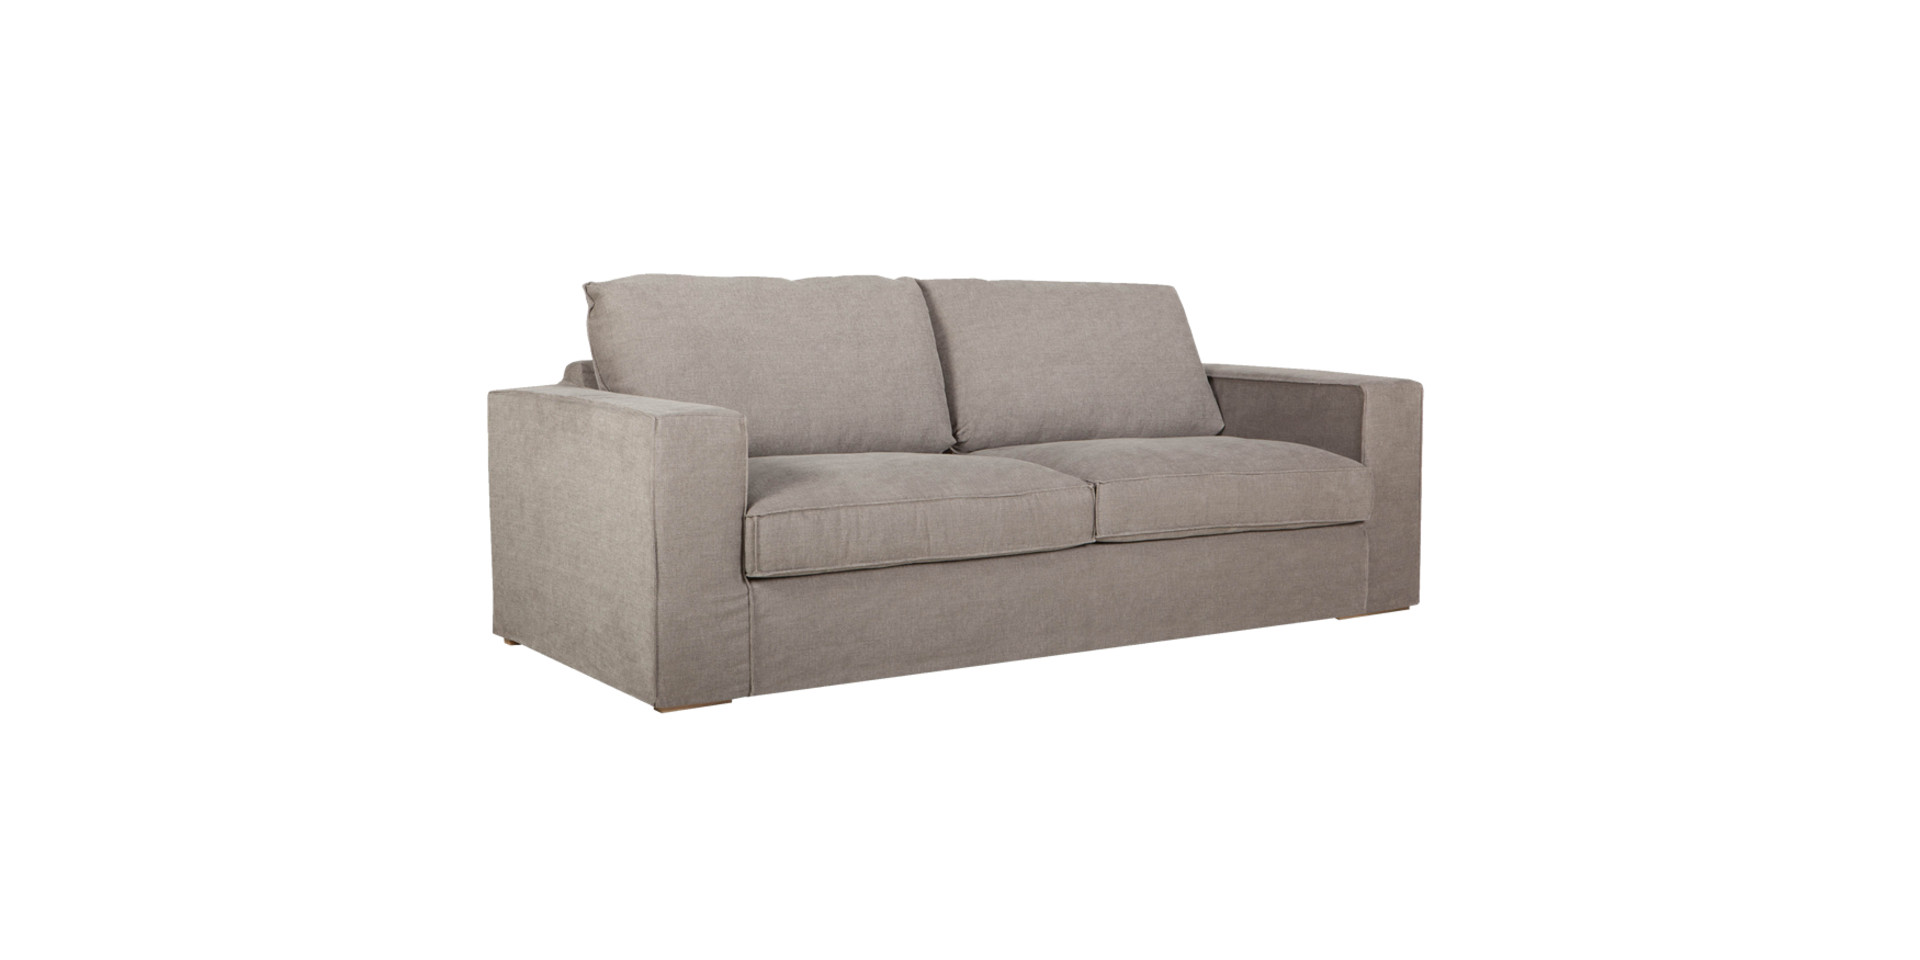 sits-abbe-canape_3seater_brest77_grey_brown_2